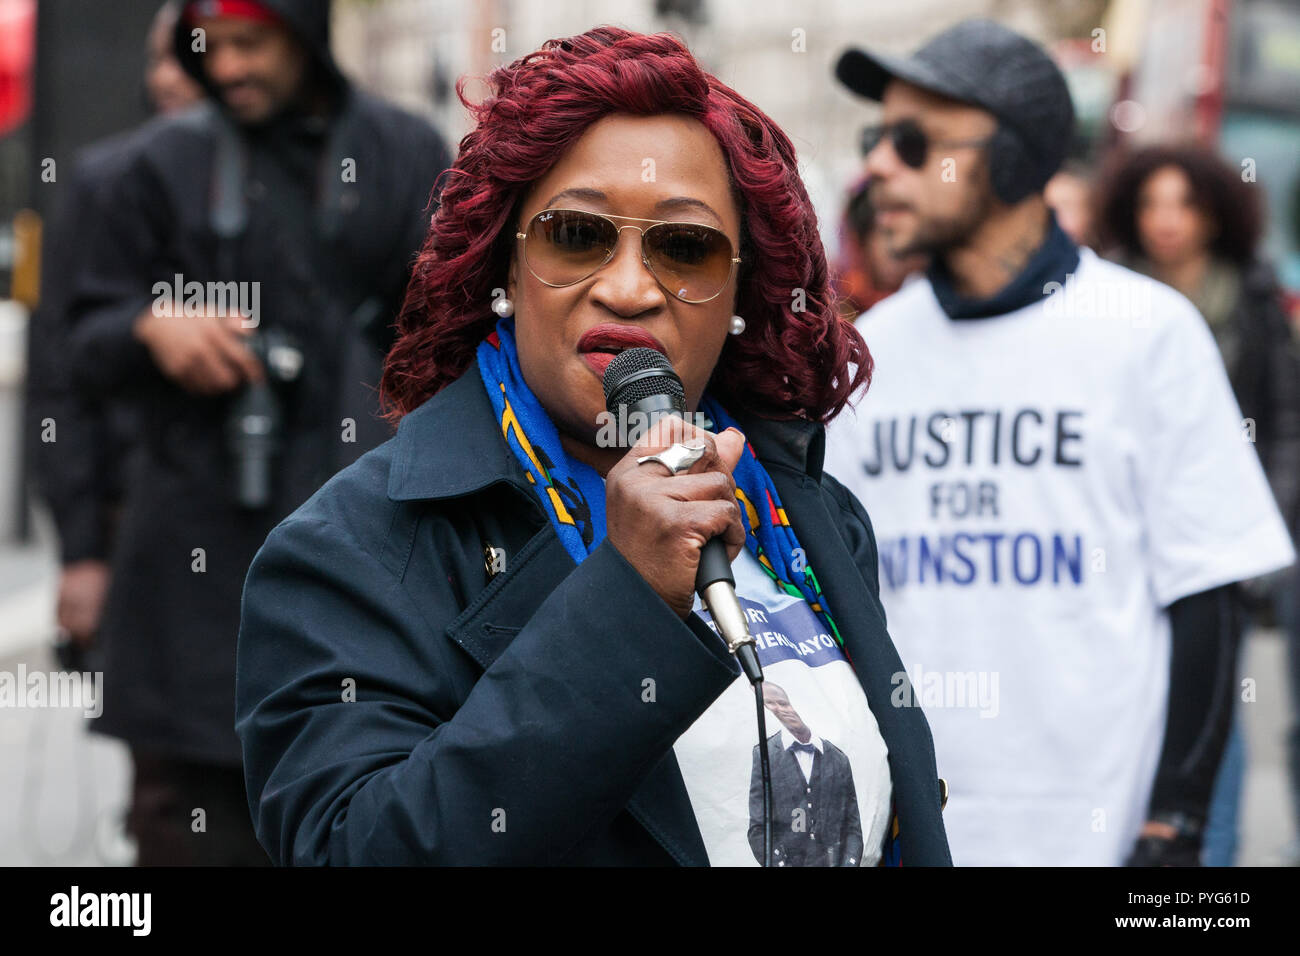 London, UK. 27th October, 2018. A relative of Sheku Bayoh addresses campaigners from the United Families and Friends Campaign (UFFC) taking part in the 20th annual procession to Downing Street in remembrance of family members and friends who died in police custody, prison, immigration detention or secure psychiatric hospitals. Sheku Bayoh died after being detained at a police station in 2015. Credit: Mark Kerrison/Alamy Live News - Stock Image